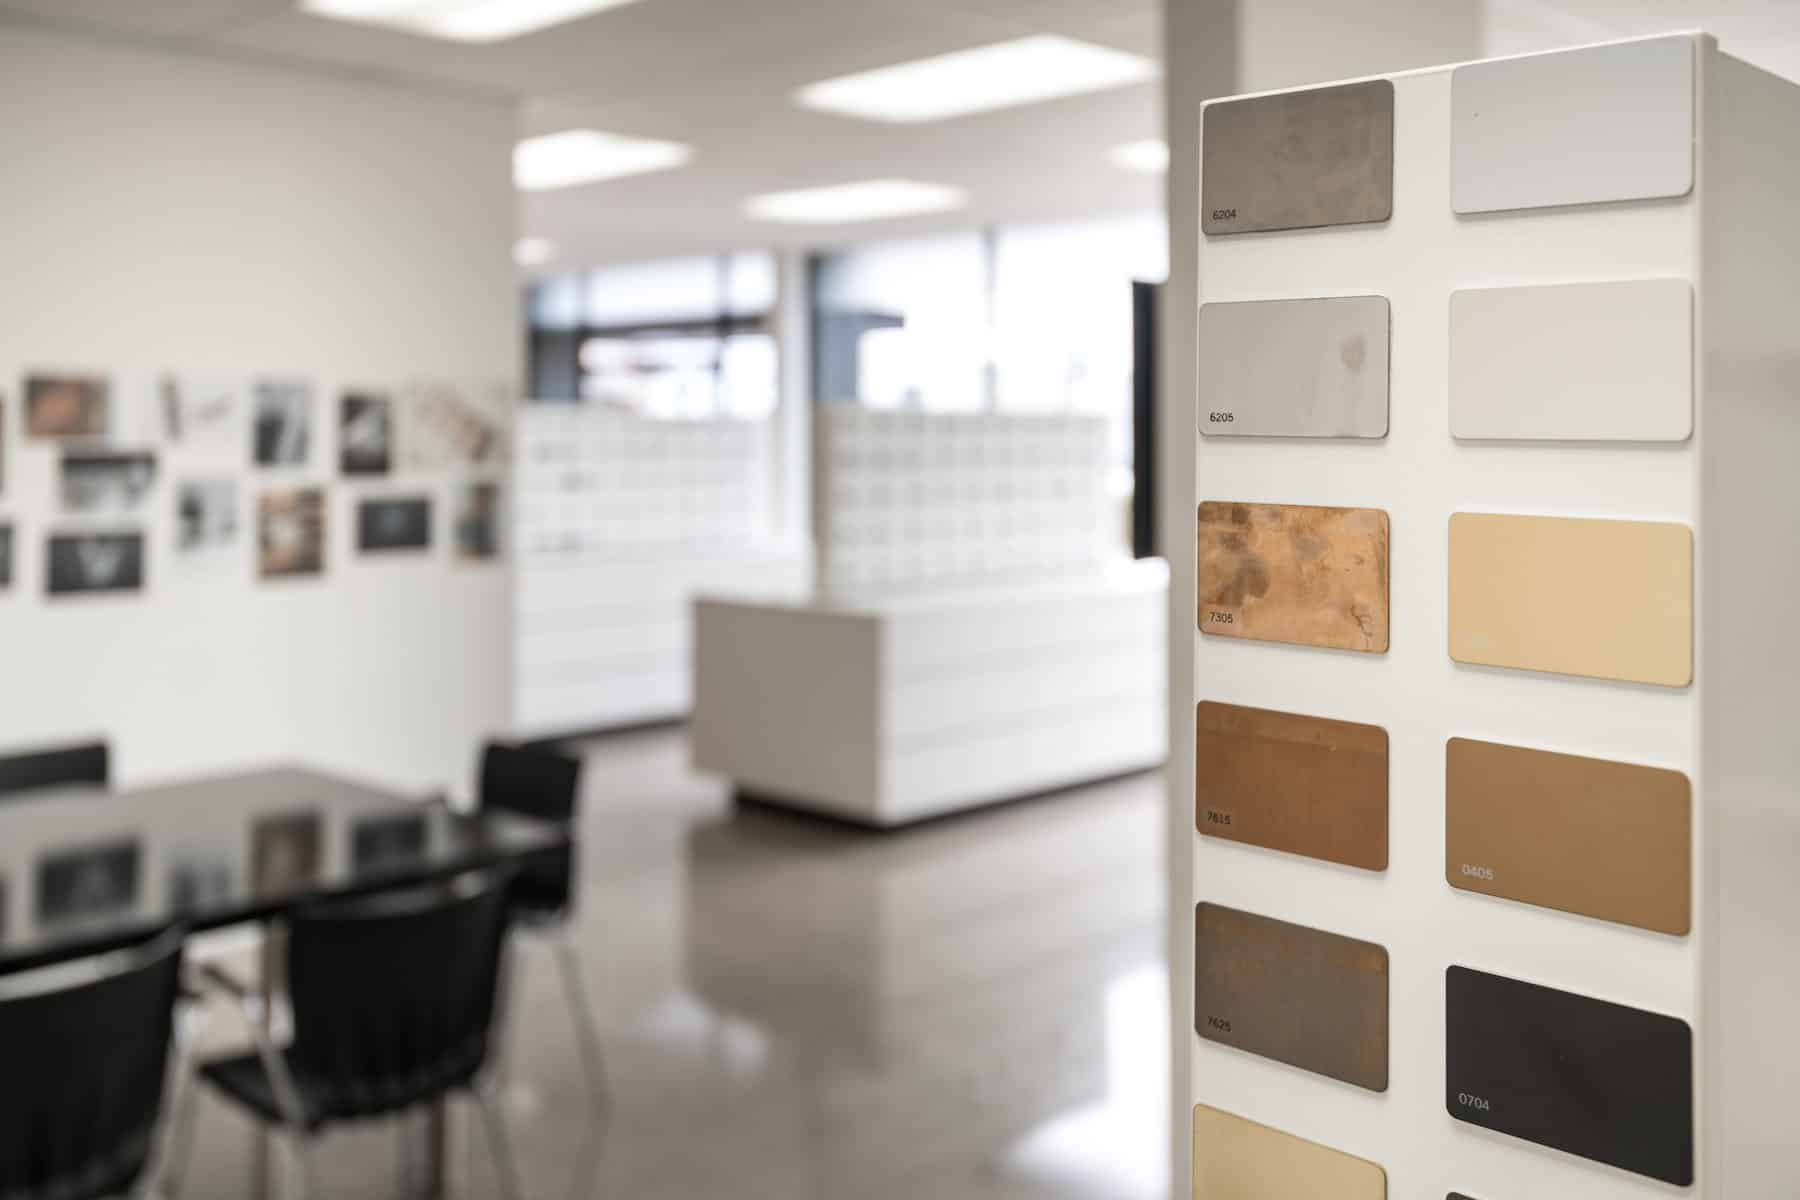 Quality finishes from aged metals to hand stitched leather designs, we work with architects and designers to provide the ideal product every time.